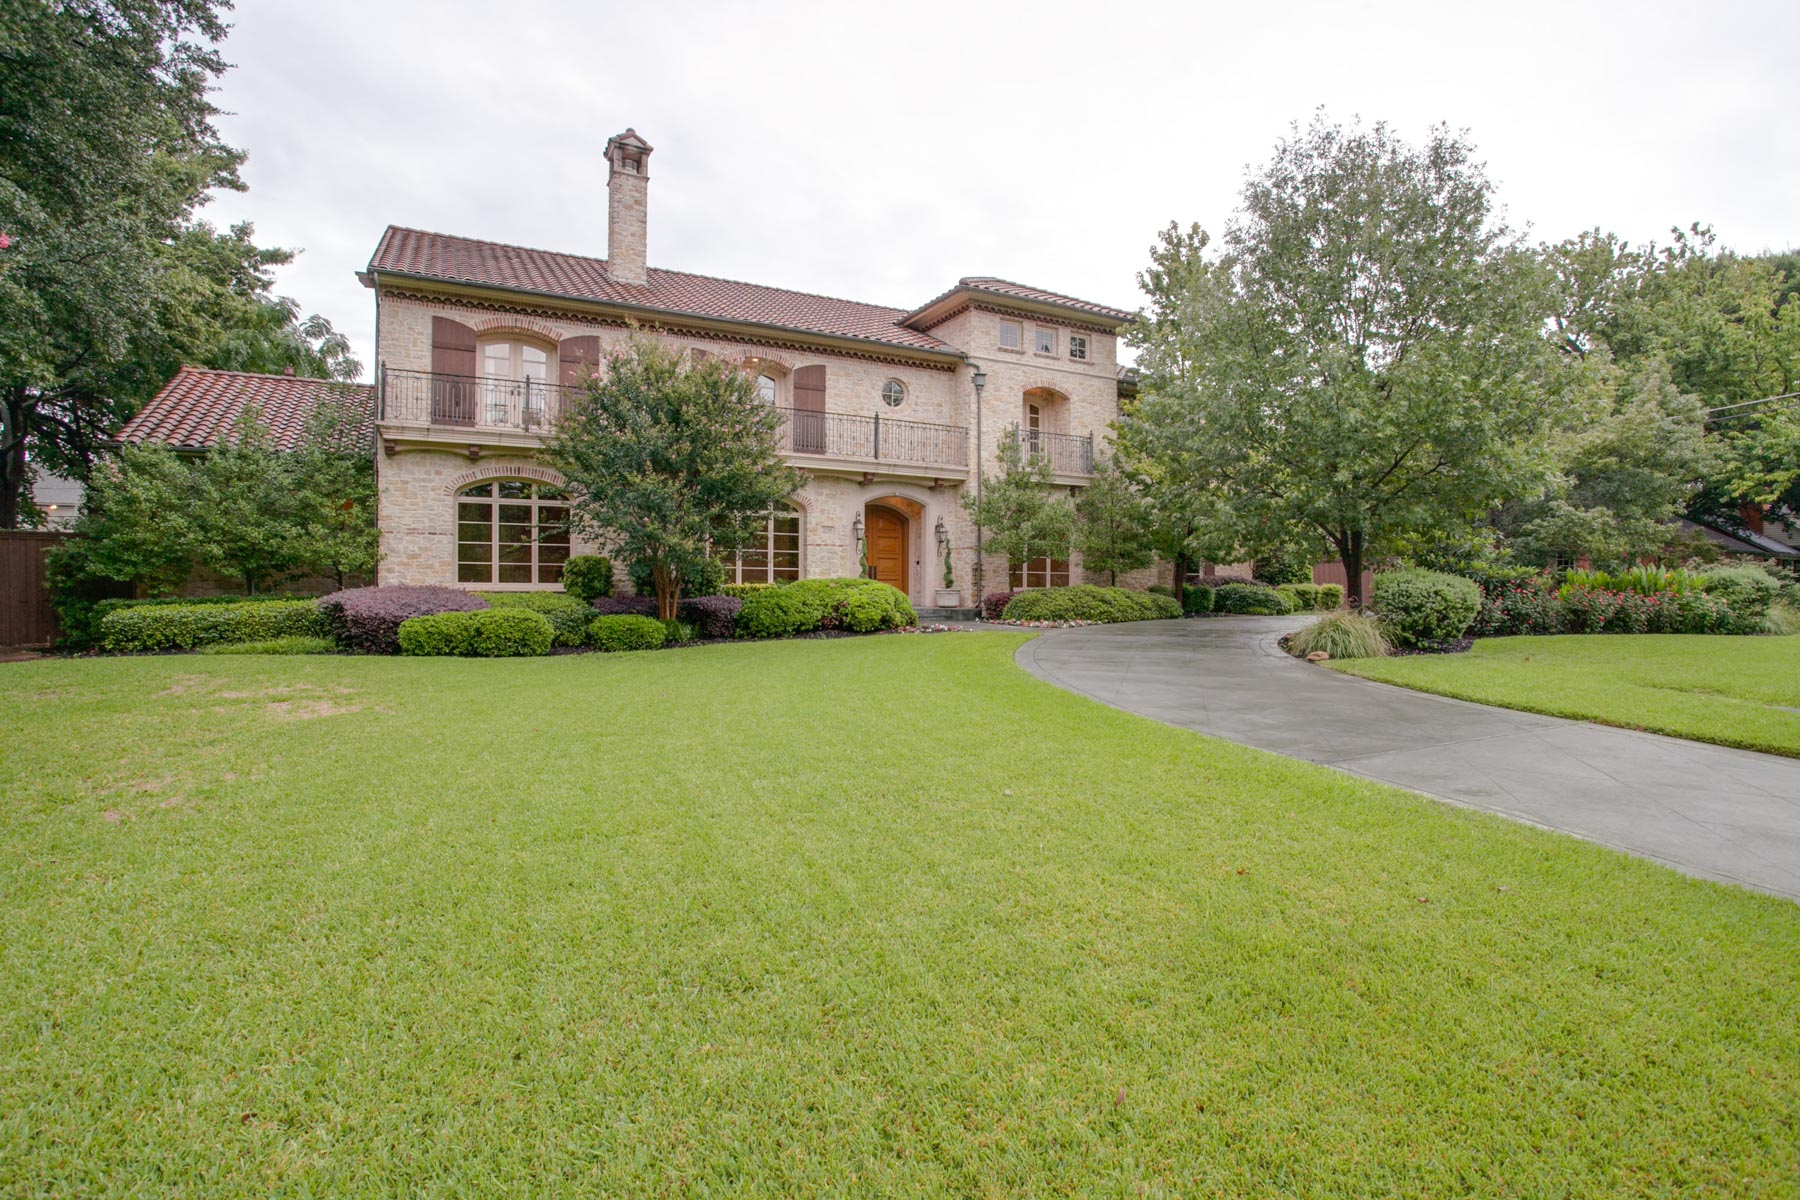 Maison unifamiliale pour l Vente à Stunning Home 5749 Redwood Ln Dallas, Texas, 75209 États-Unis